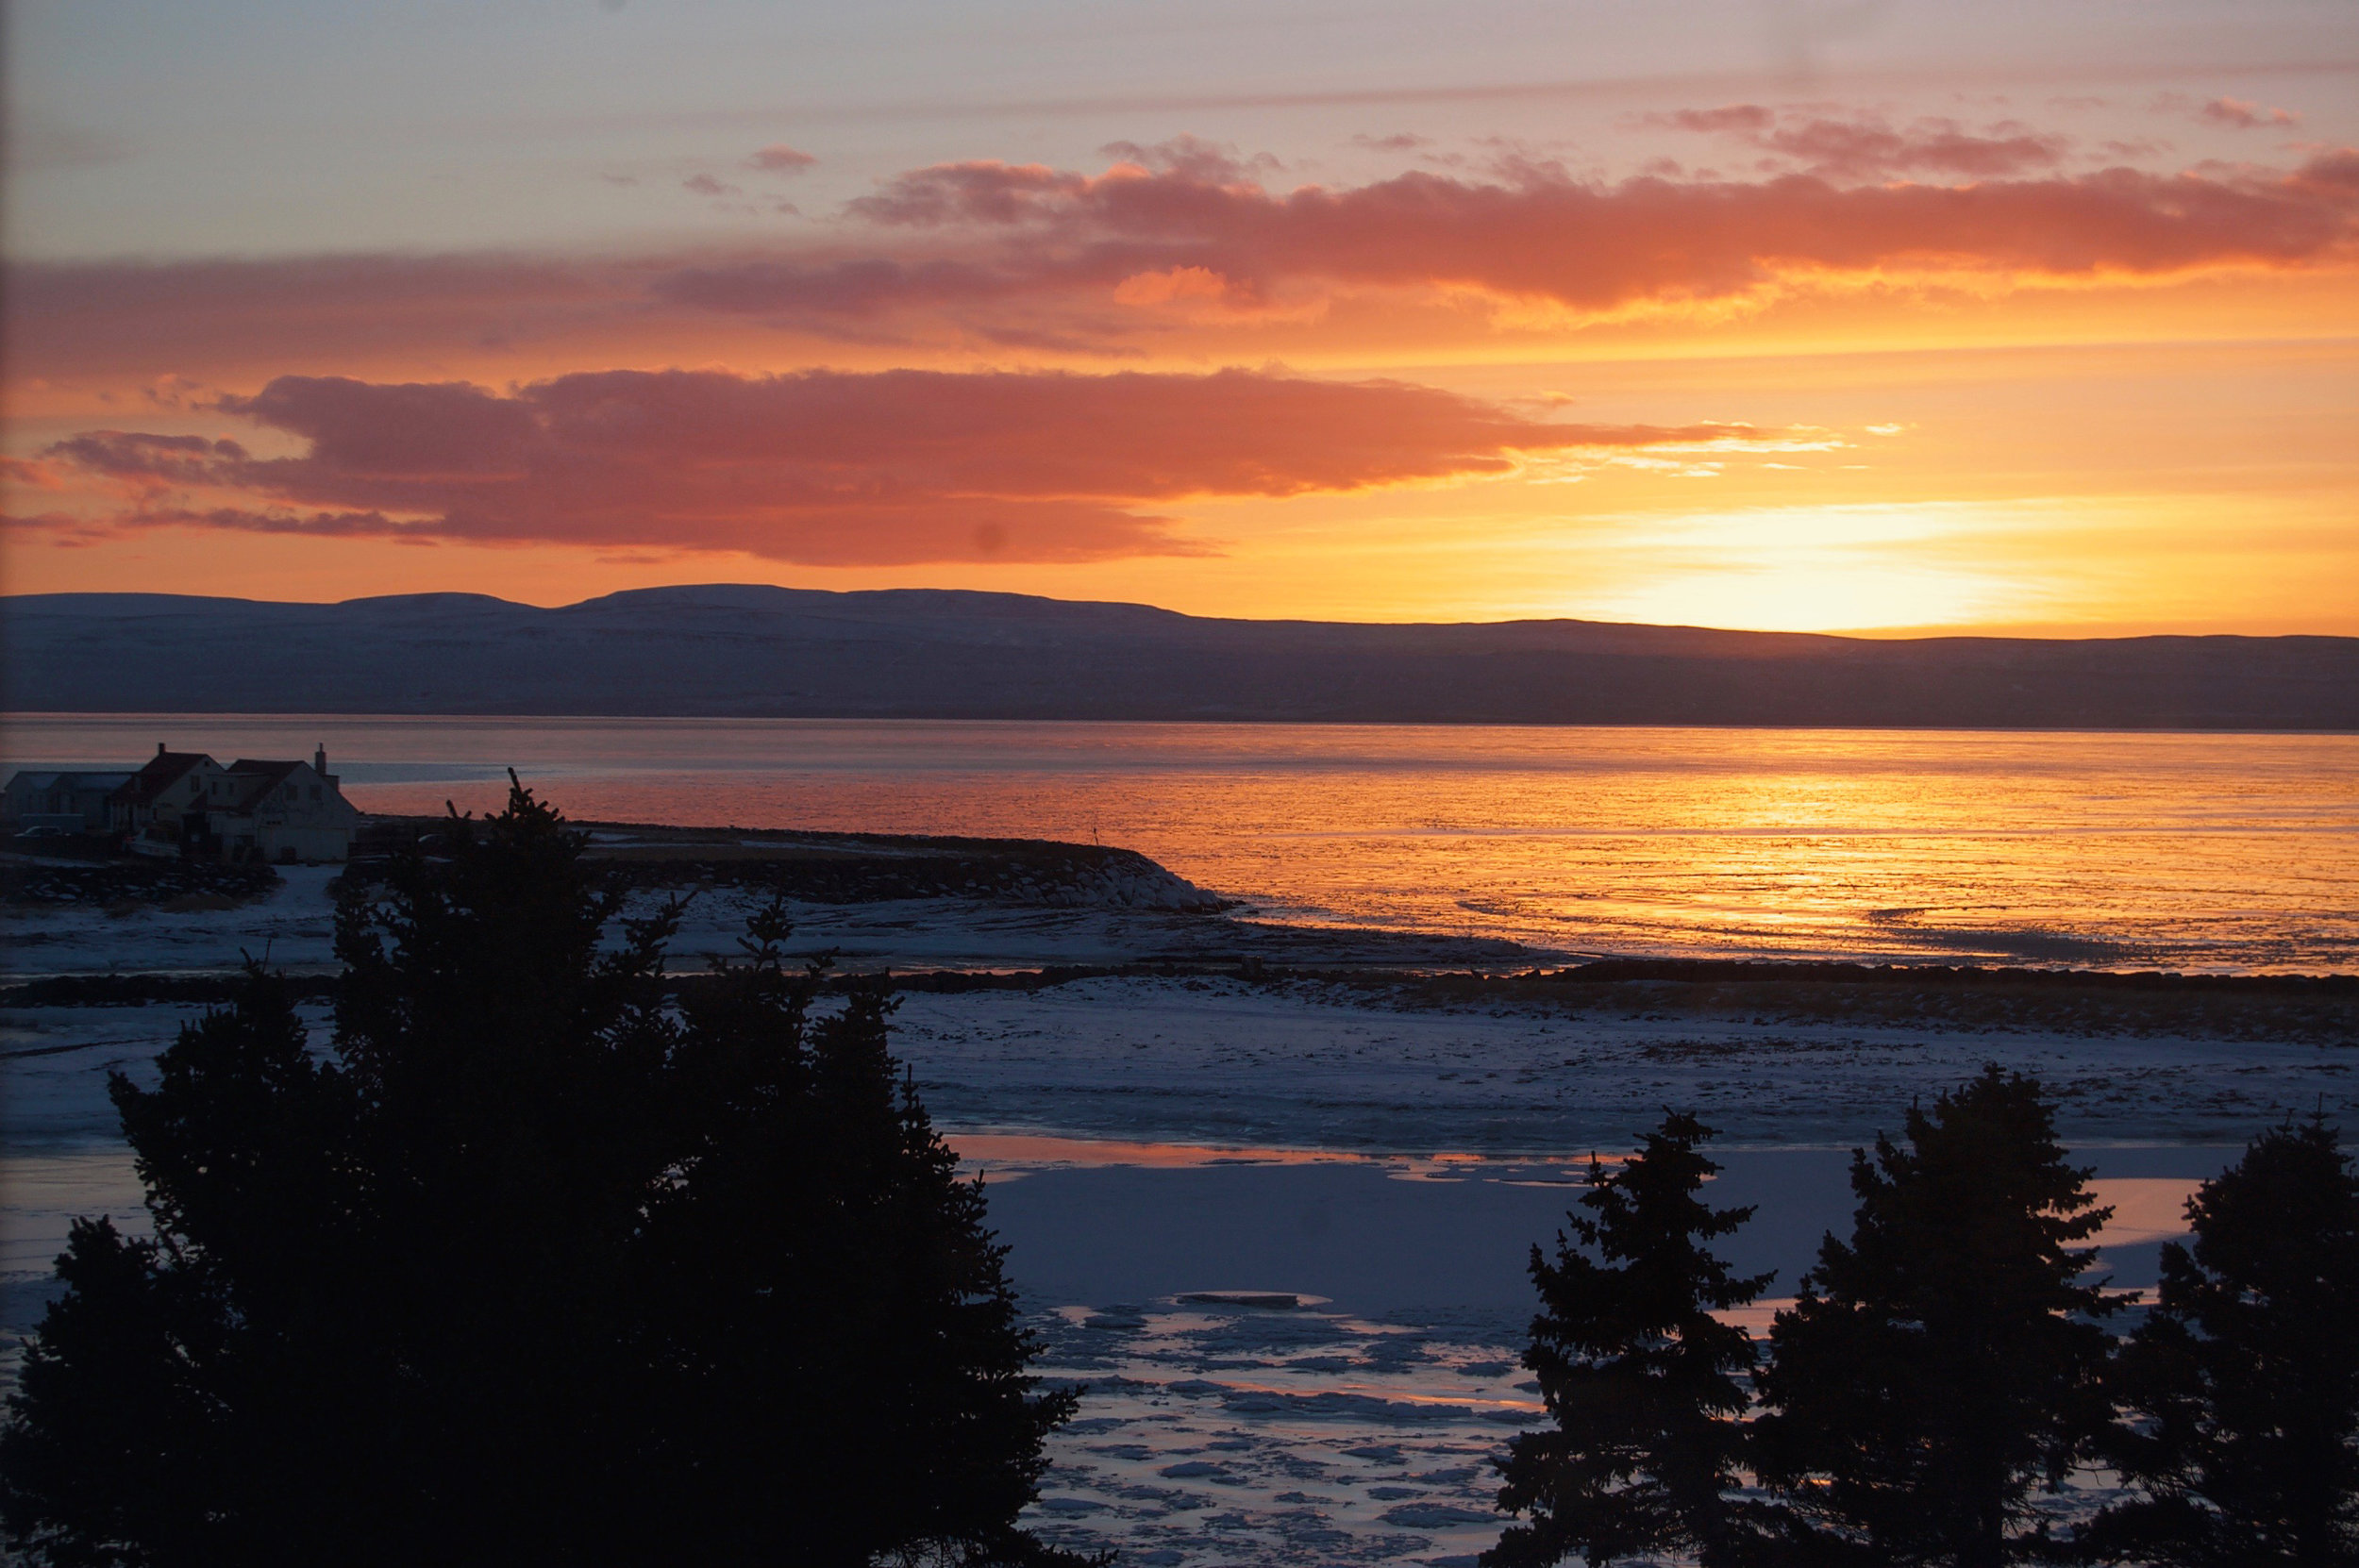 Sunset, view from my window at the Textile Centre -Blönduós, Iceland.